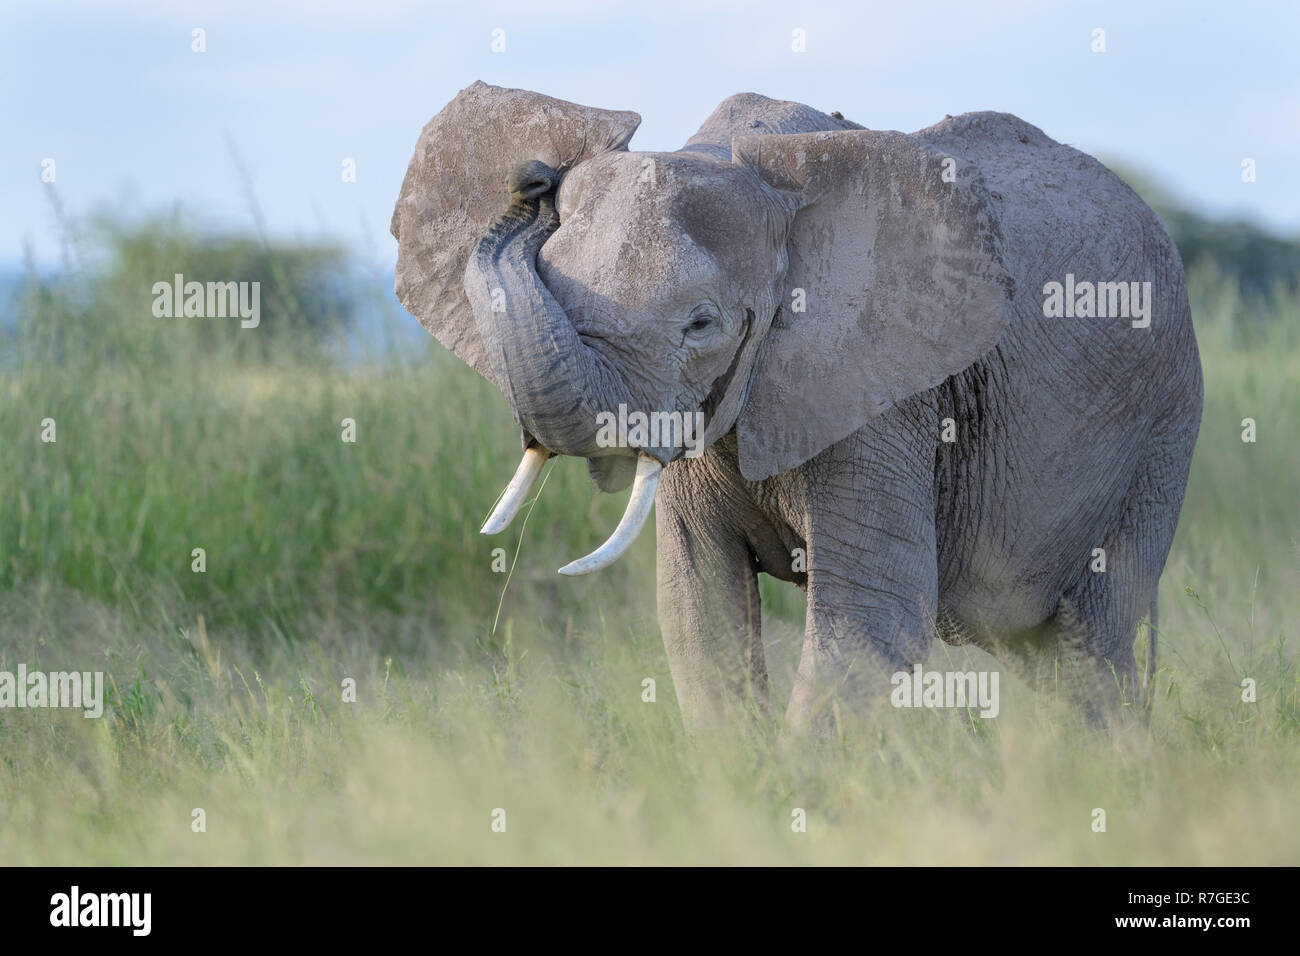 Young African elephant (Loxodonta africana) standing in grassland, close by, smelling at photographer, Amboseli national park, Kenya. - Stock Image